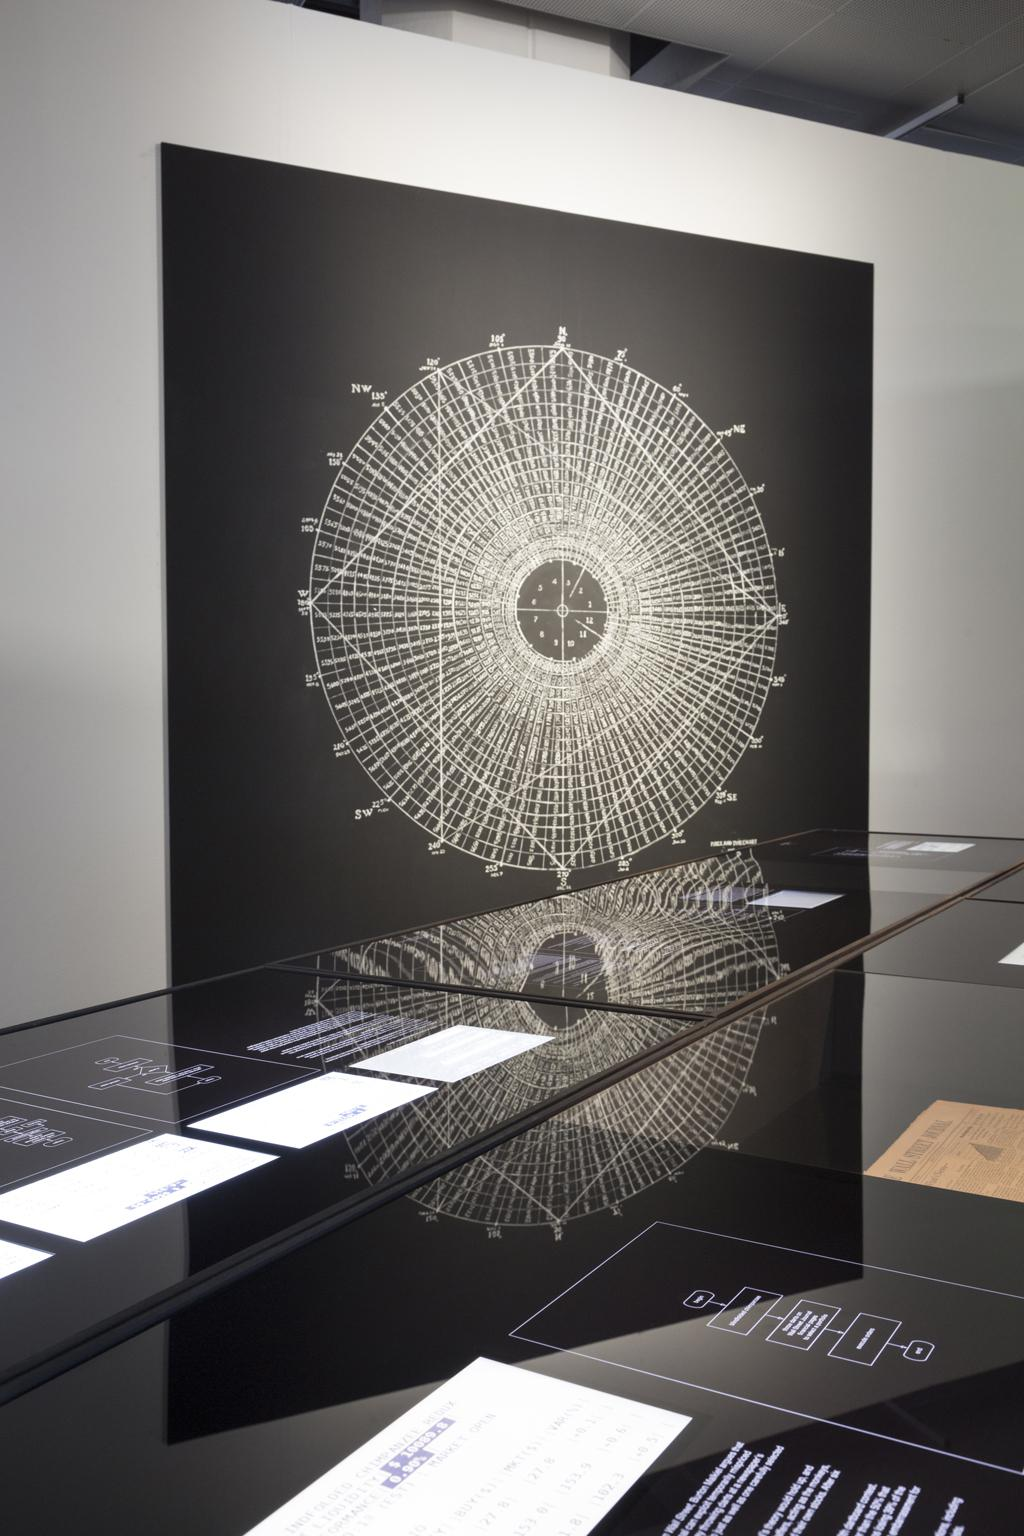 In the background: A circle full of bars. In the foreground: A display table